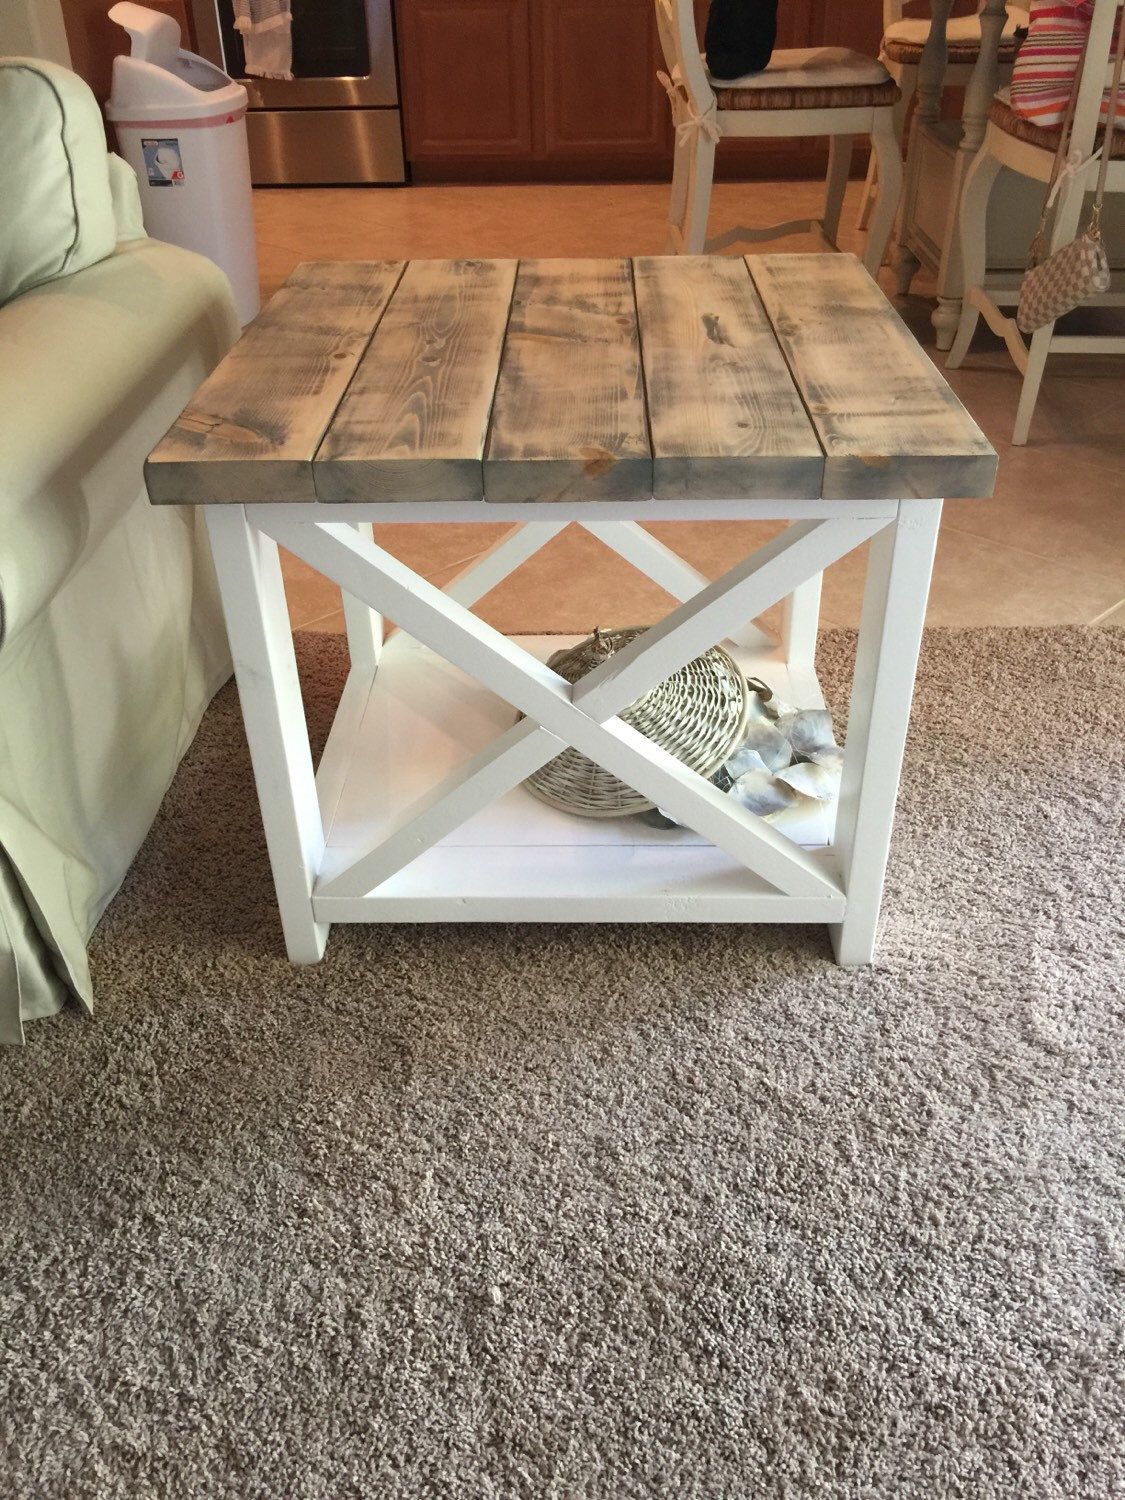 oblong tablecloth sizes probably fantastic awesome country white custom rustic farmhouse end table thewoodmarket etsy tables listing furniture for small spaces modern accent